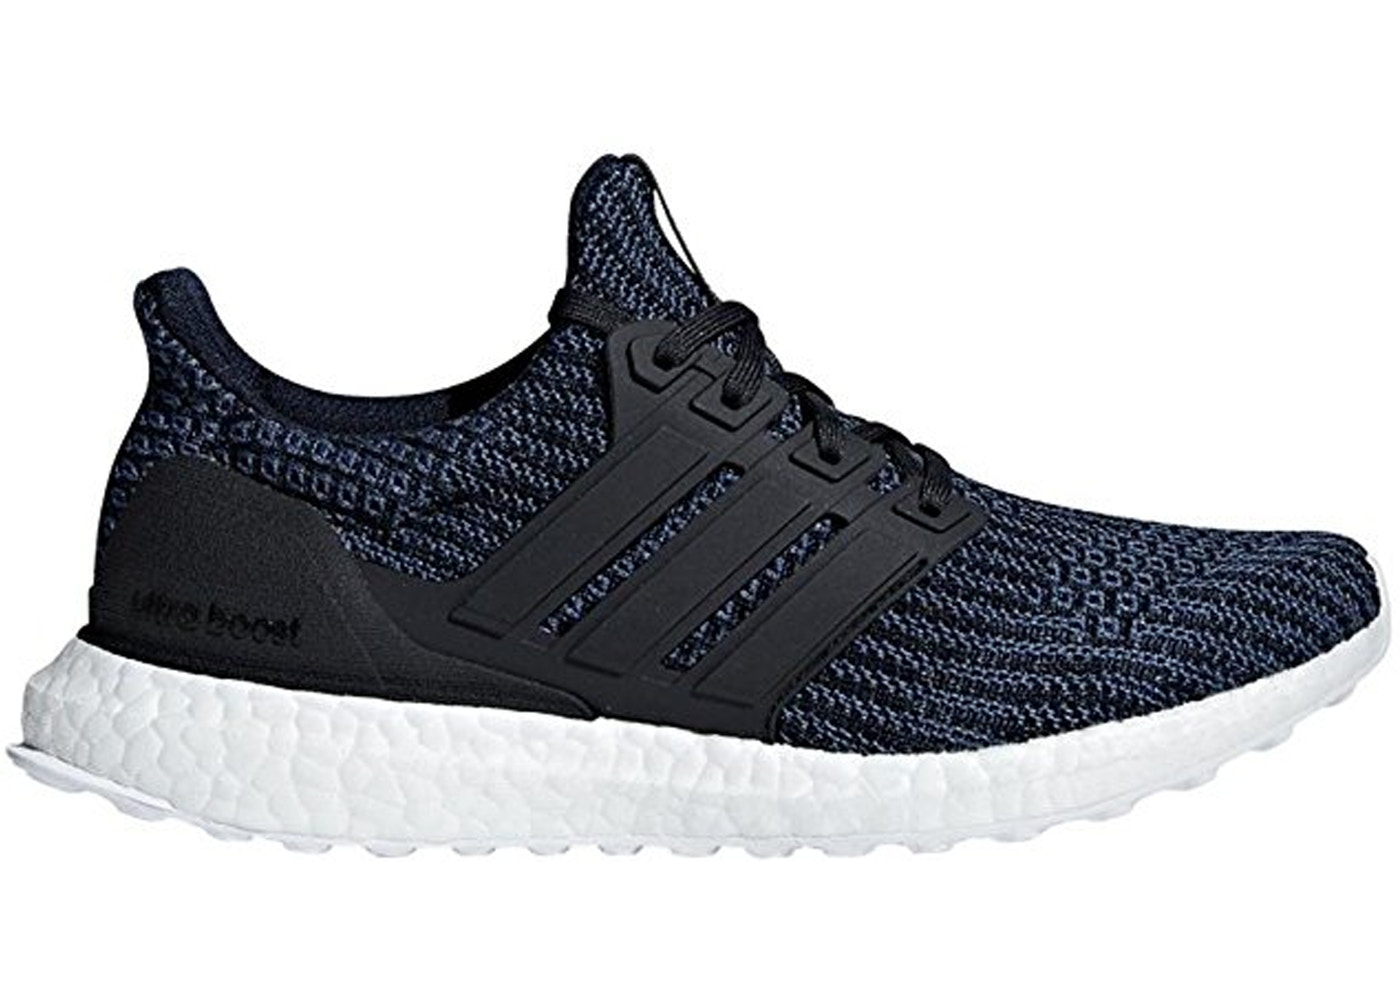 Authentic adidas Ultraboost 4.0 Men's Running Shoes Core Black